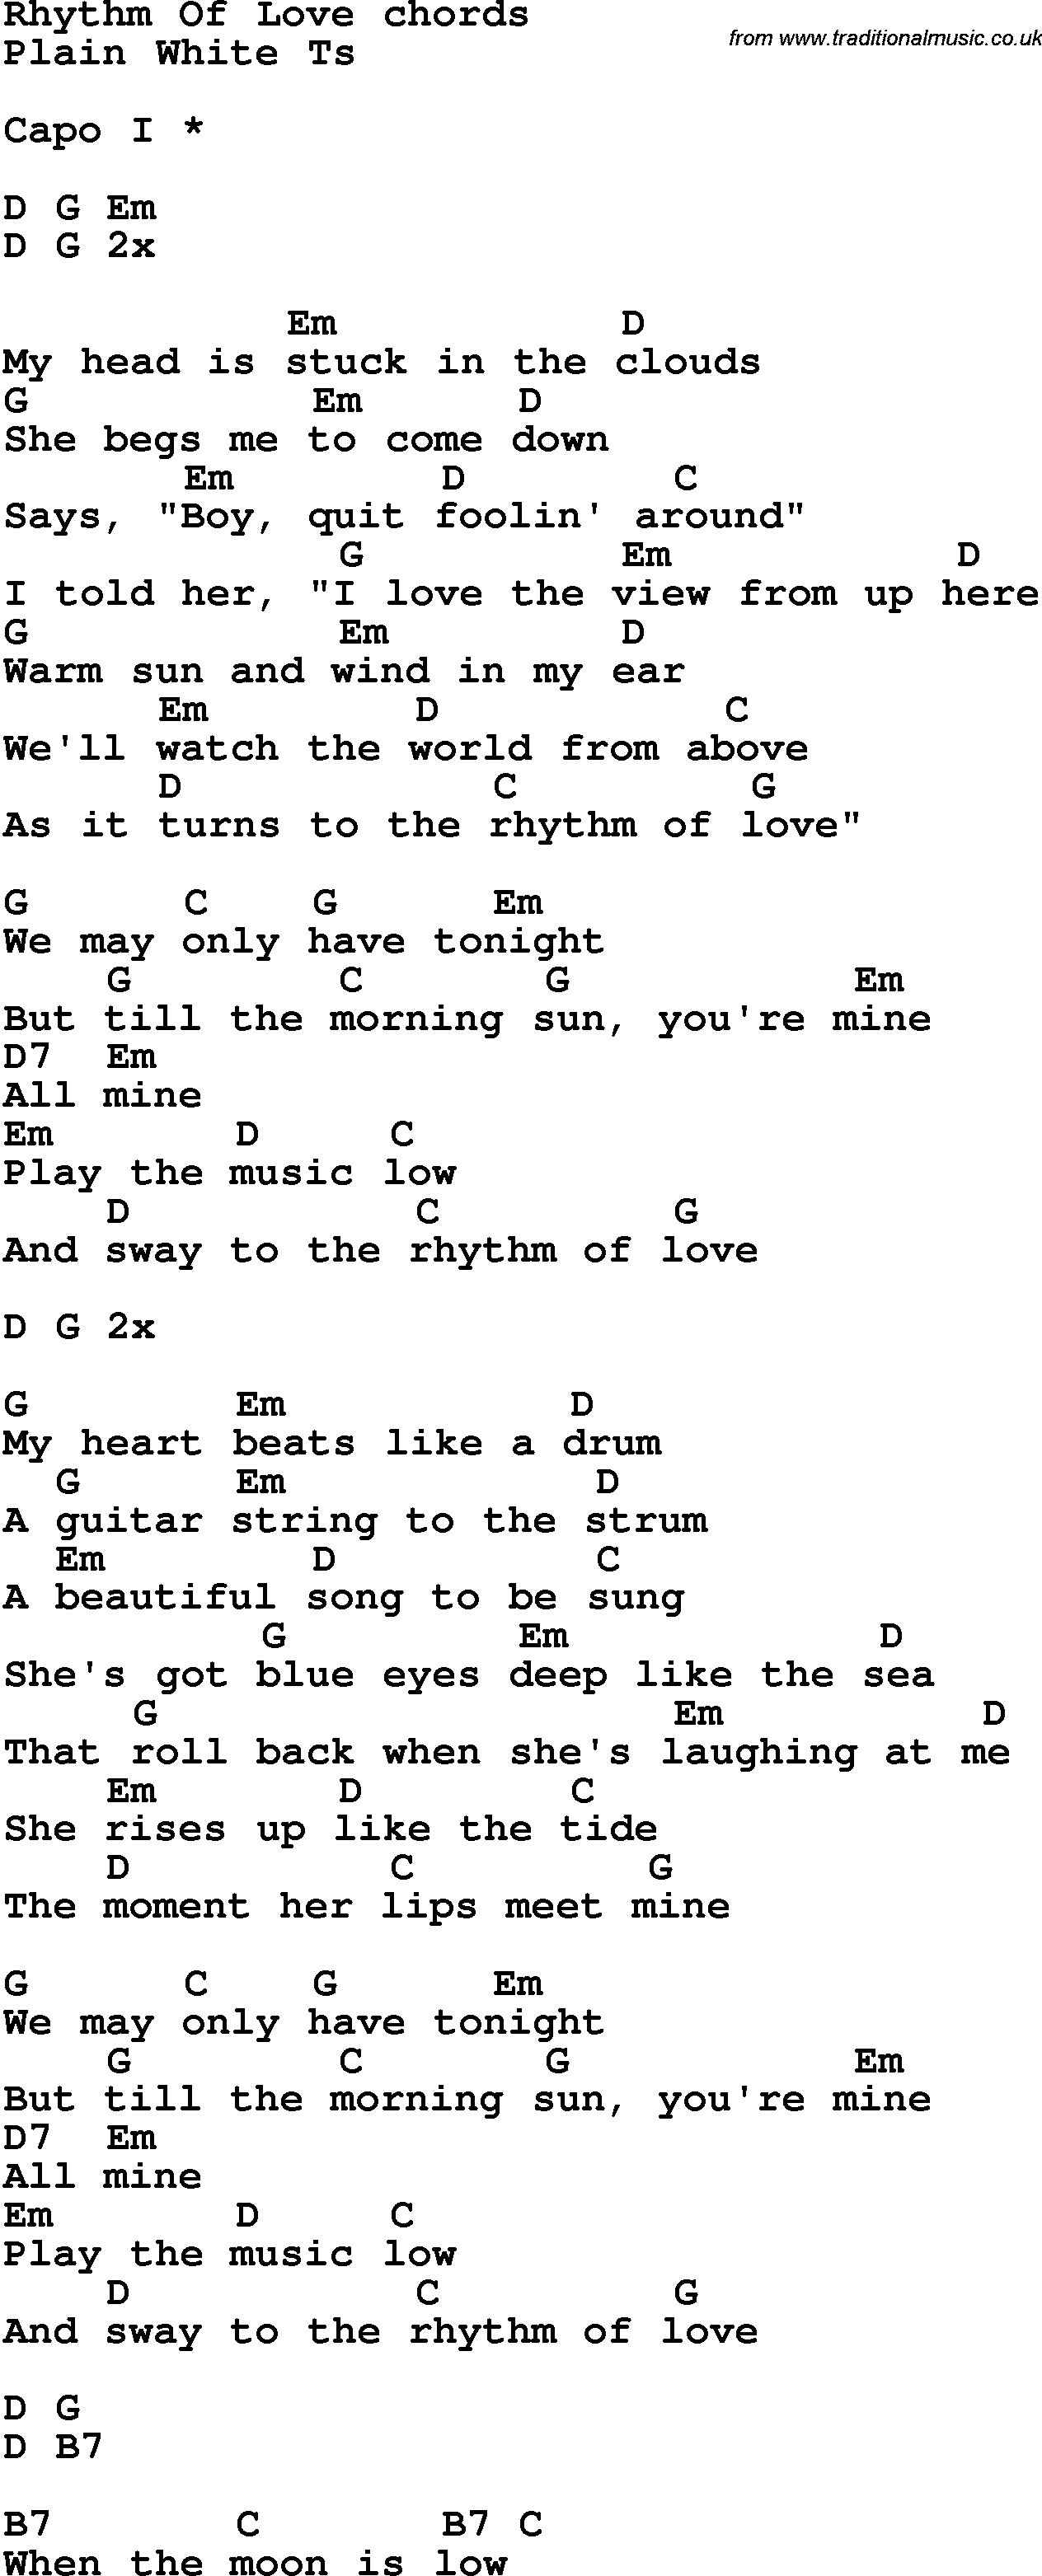 Sea Of Love Chords Song Lyrics With Guitar Chords For Rhythm Of Love